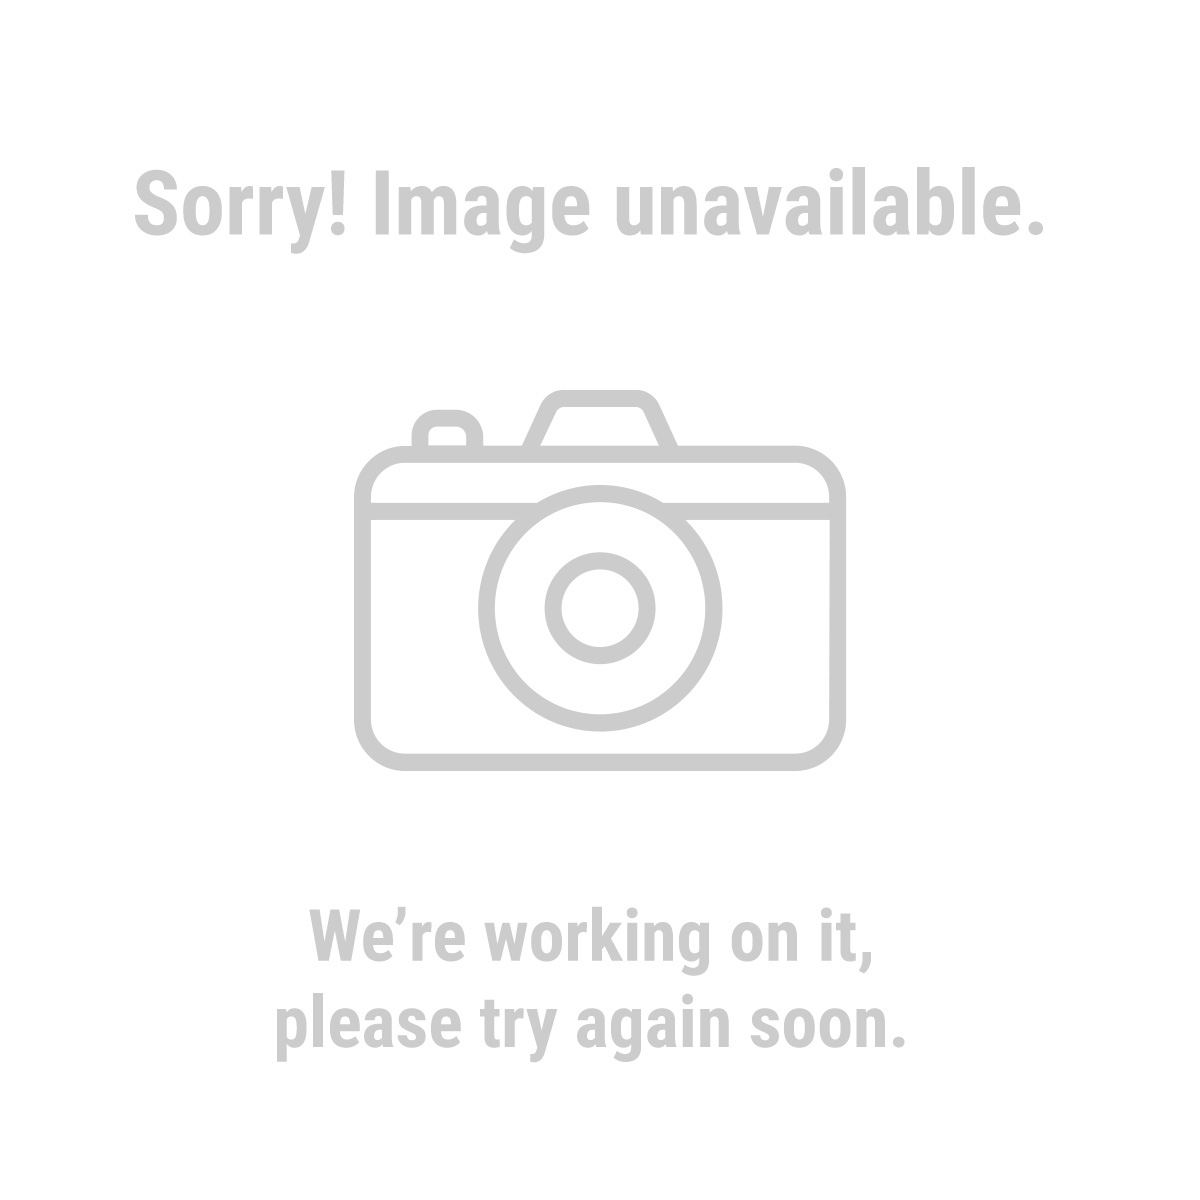 HFT 93687 125 Volt, 15 Amp Female Plug Connector